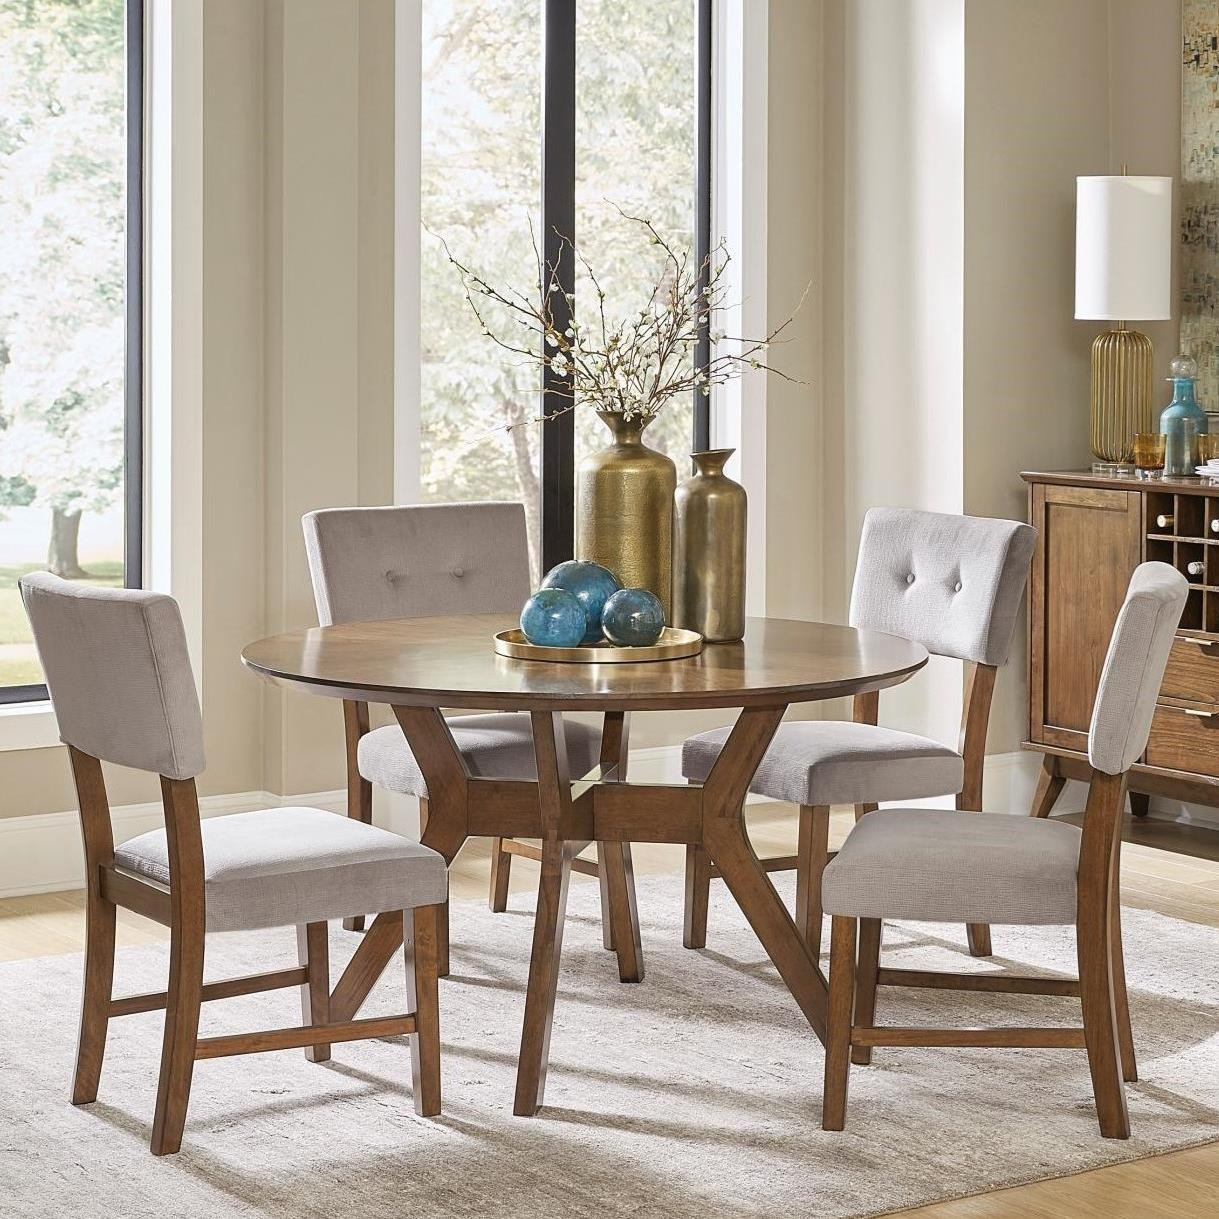 5 Piece Chair & Table Set